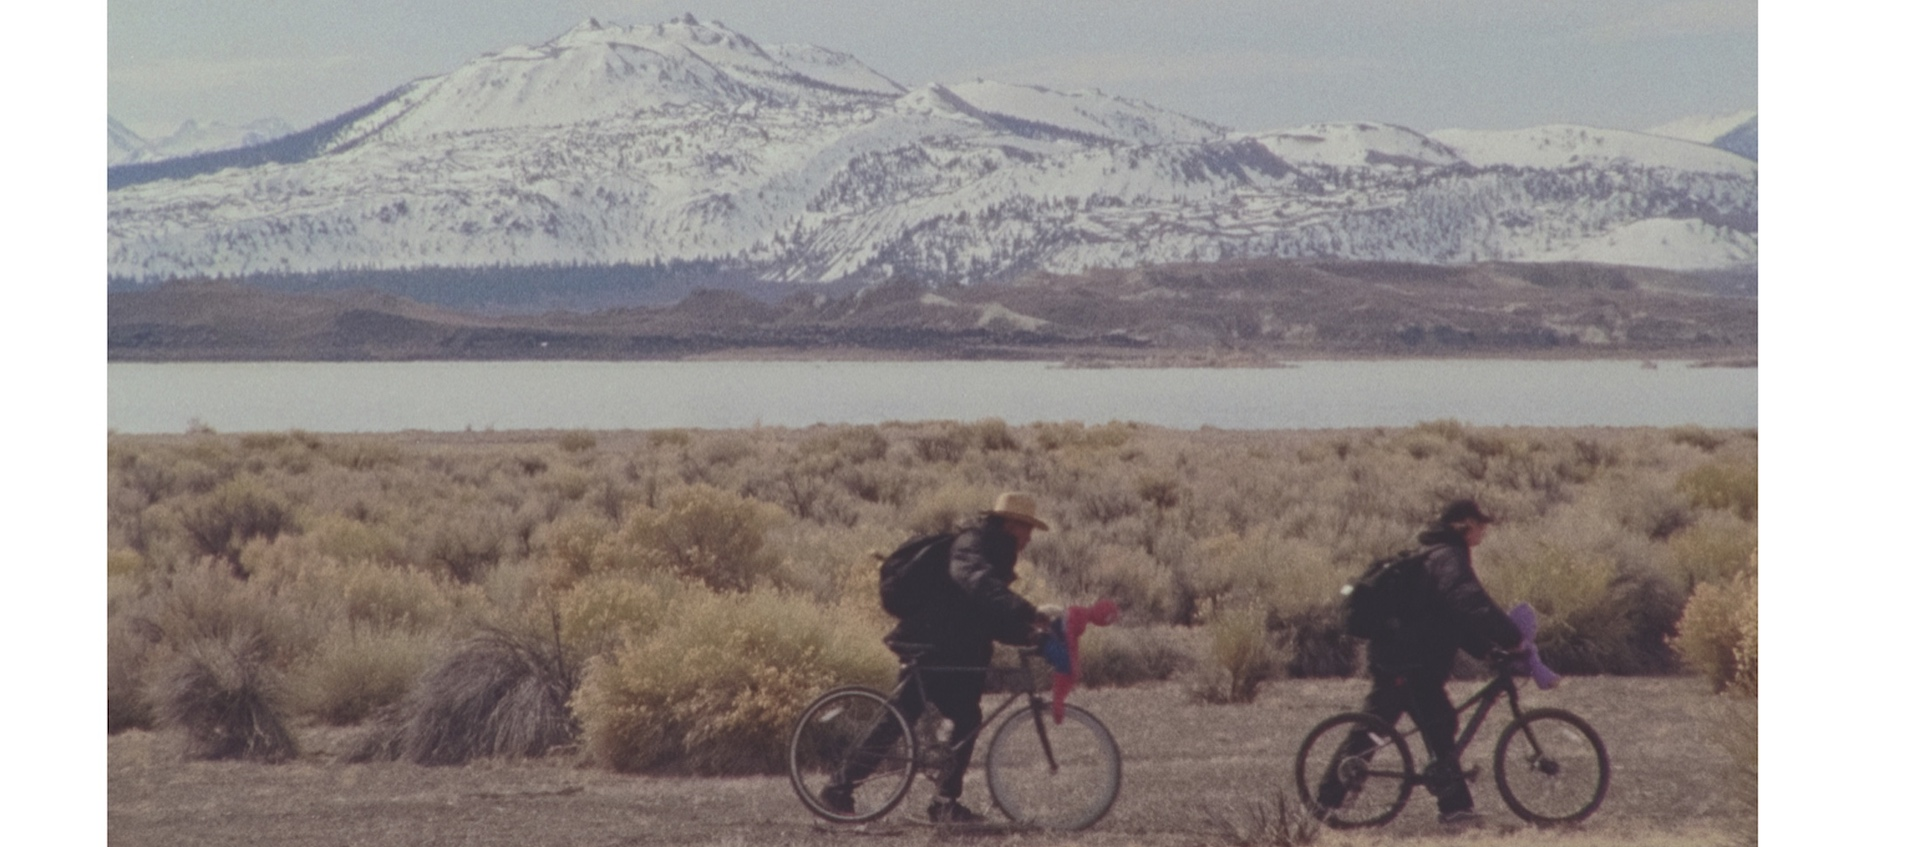 Two teenage boys ride bikes against a gray mountain-filled background in an image from artist Stanya Kahn's short film No Go Backs